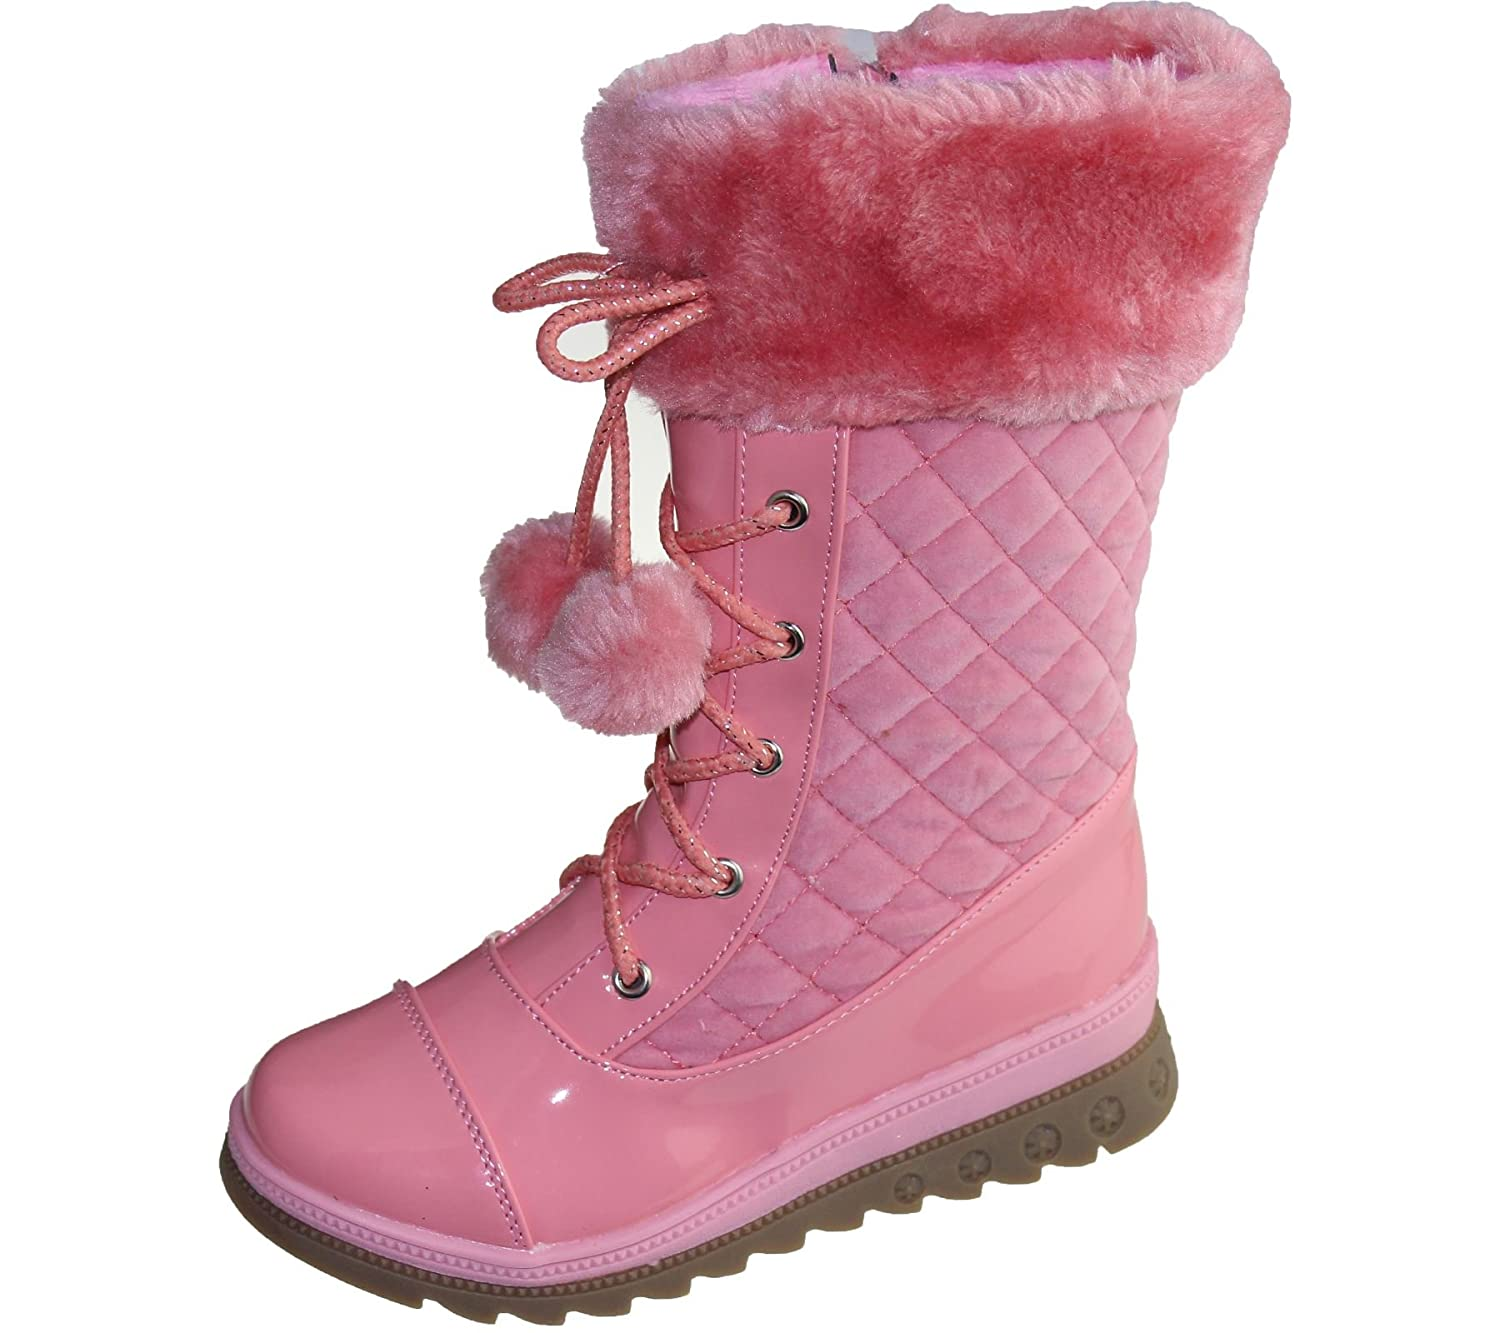 KOLLACHE Girls Warm Linned Boots Pom Pom Winter Christmas High Top Quilted Ankle Shoes Size